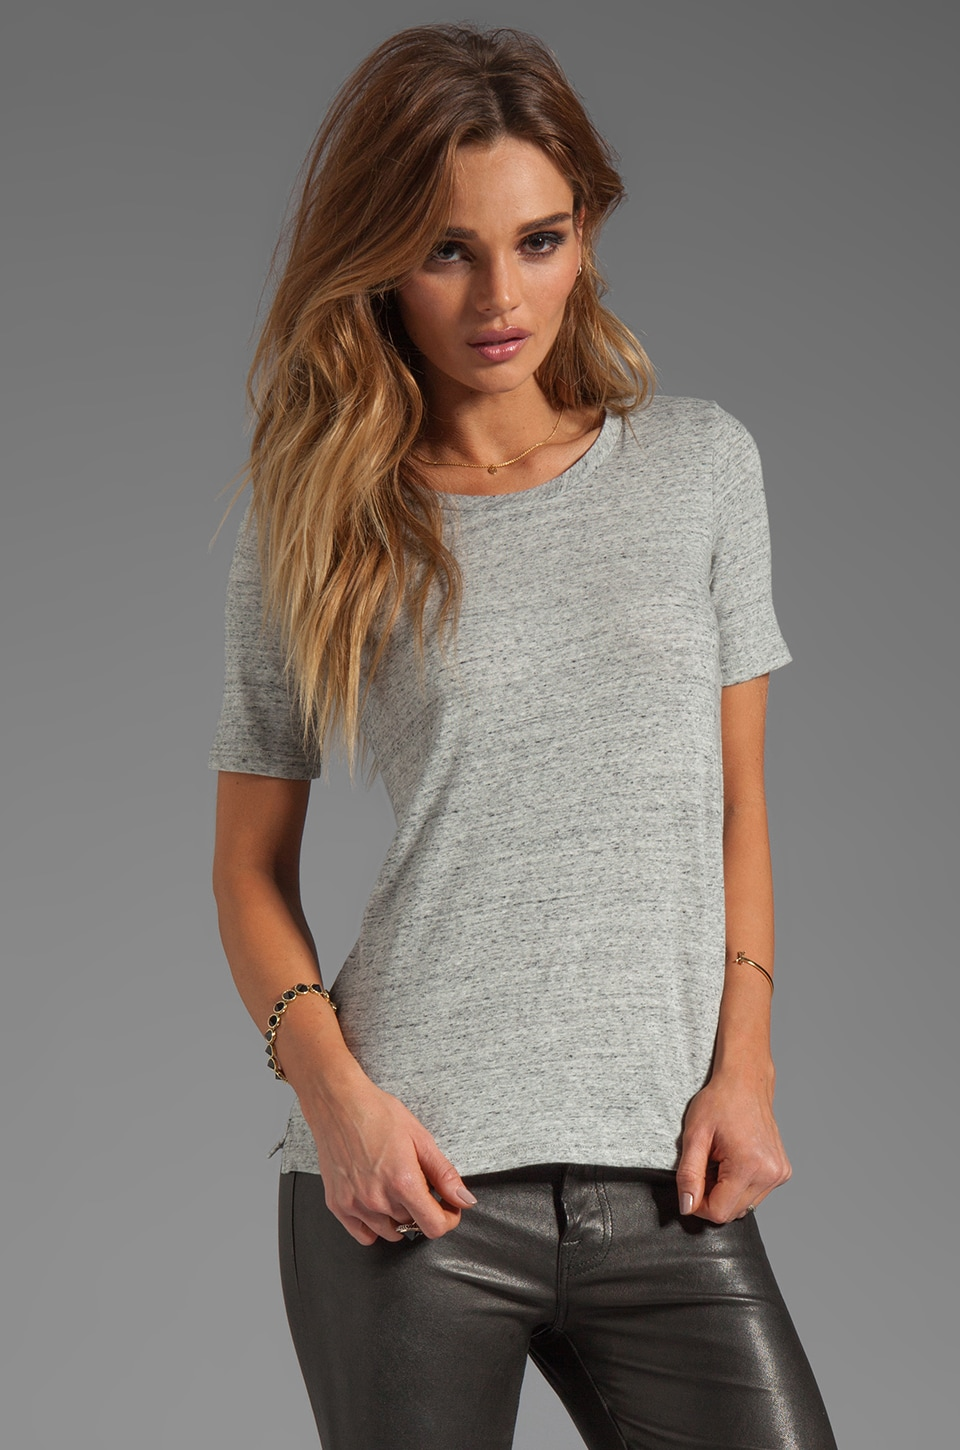 Theory Bowis Tee in Heather Grey